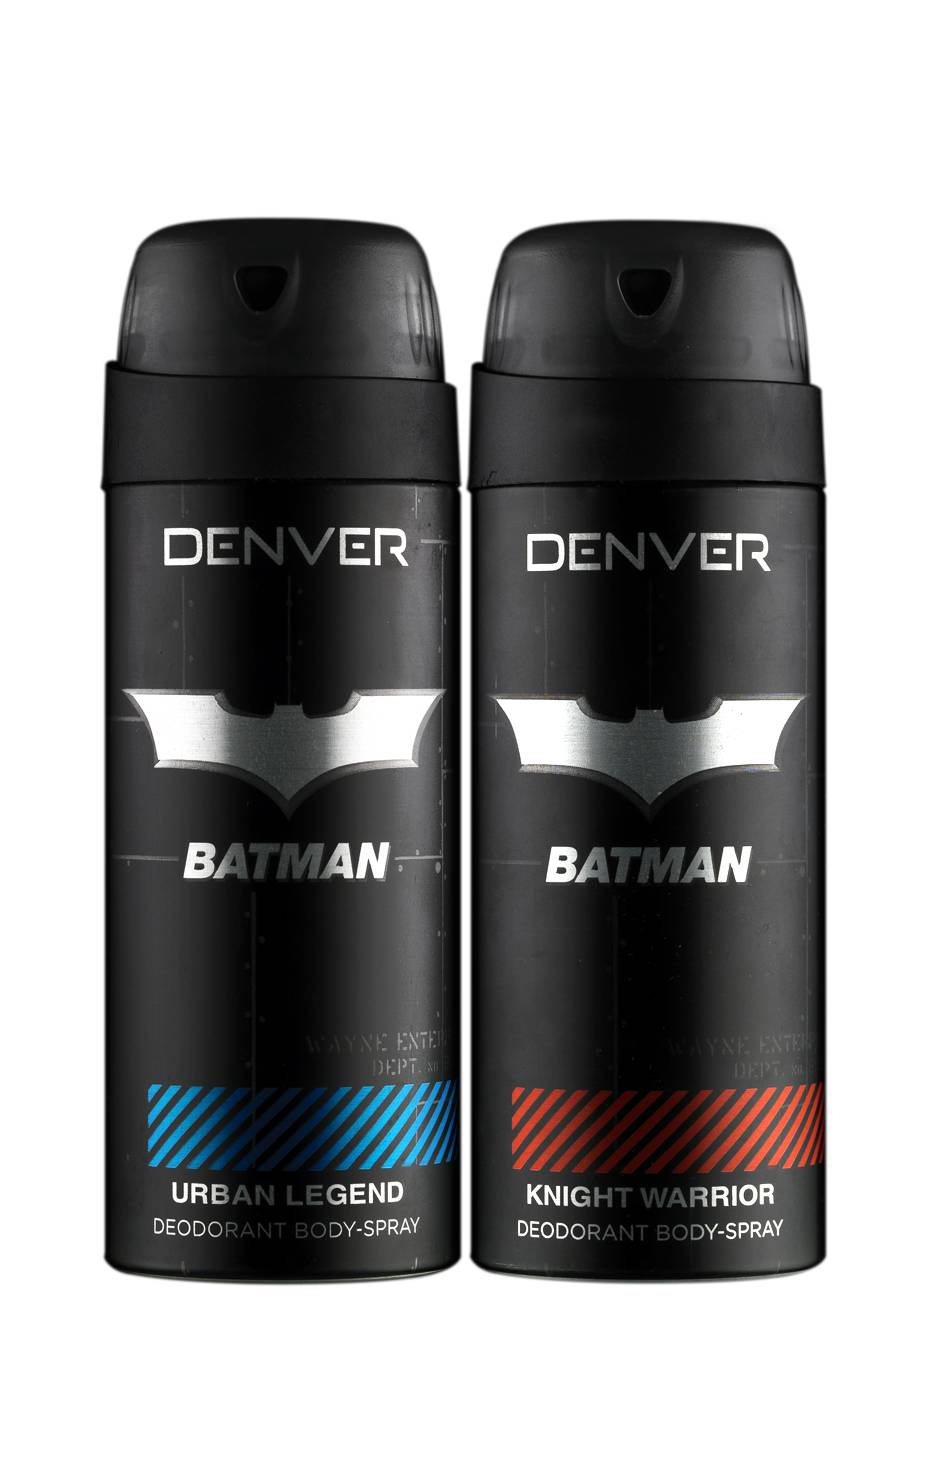 Denver Batman Urban Legend and Knight Warrior Deodorant Combo (Pack of 2)